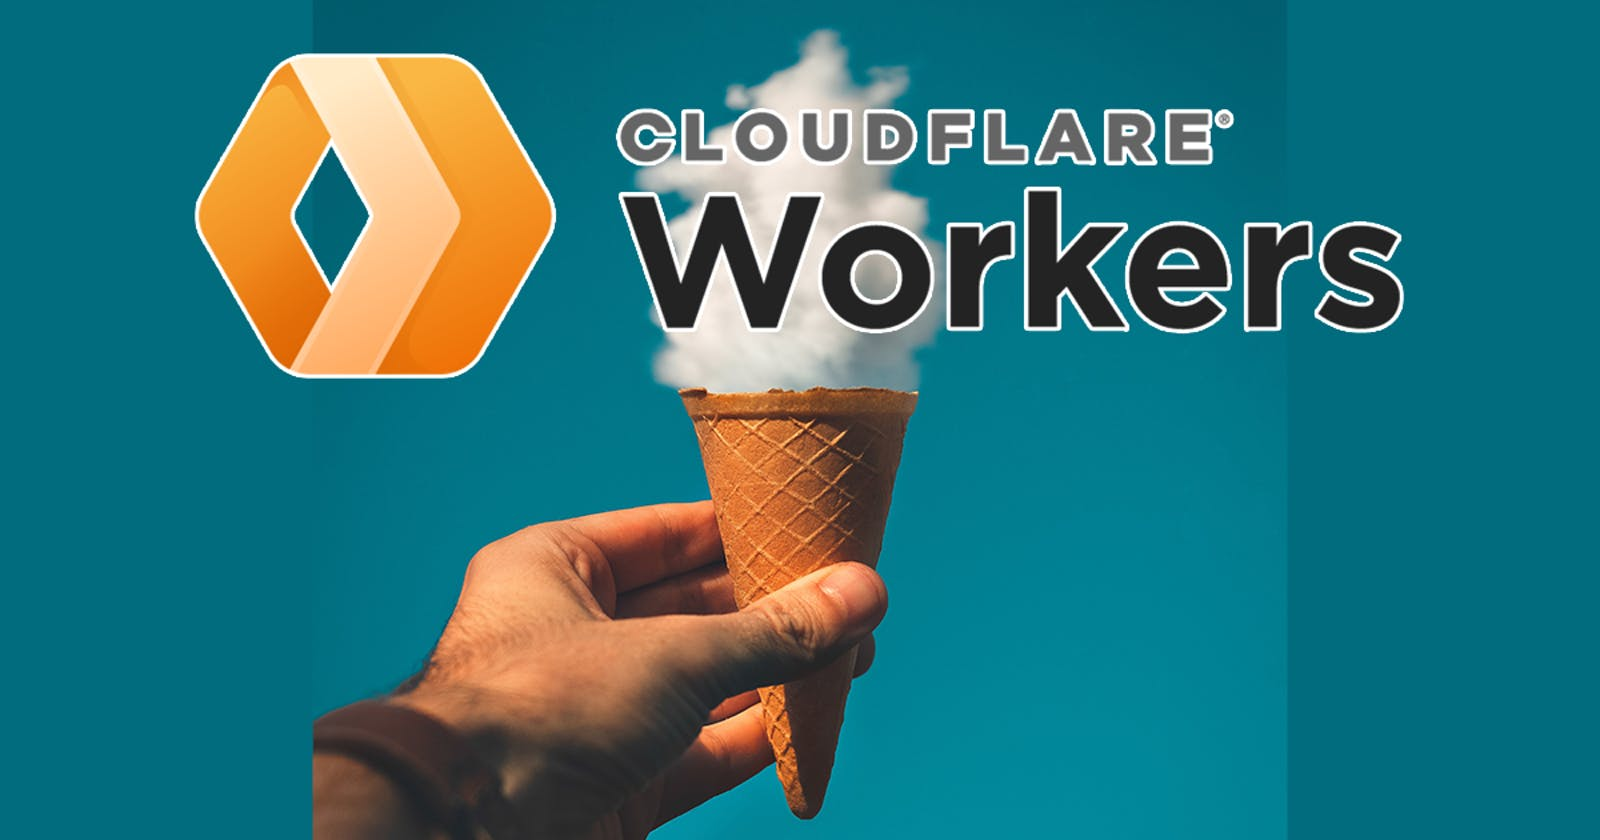 ⛅ Smart Routing with Cloudflare Workers and Webpack (bonus content)